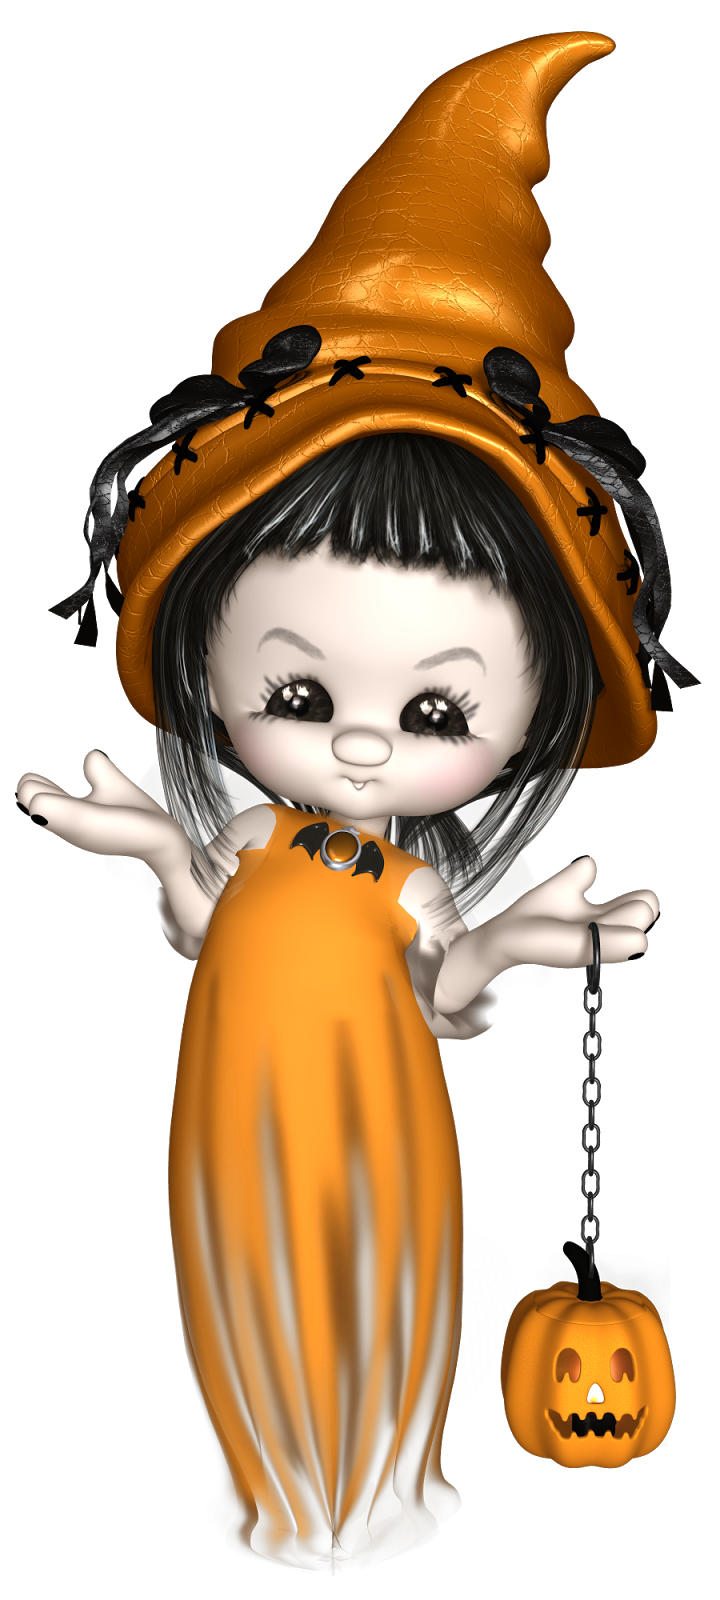 Clipart halloween whimsical. Pin by michele on